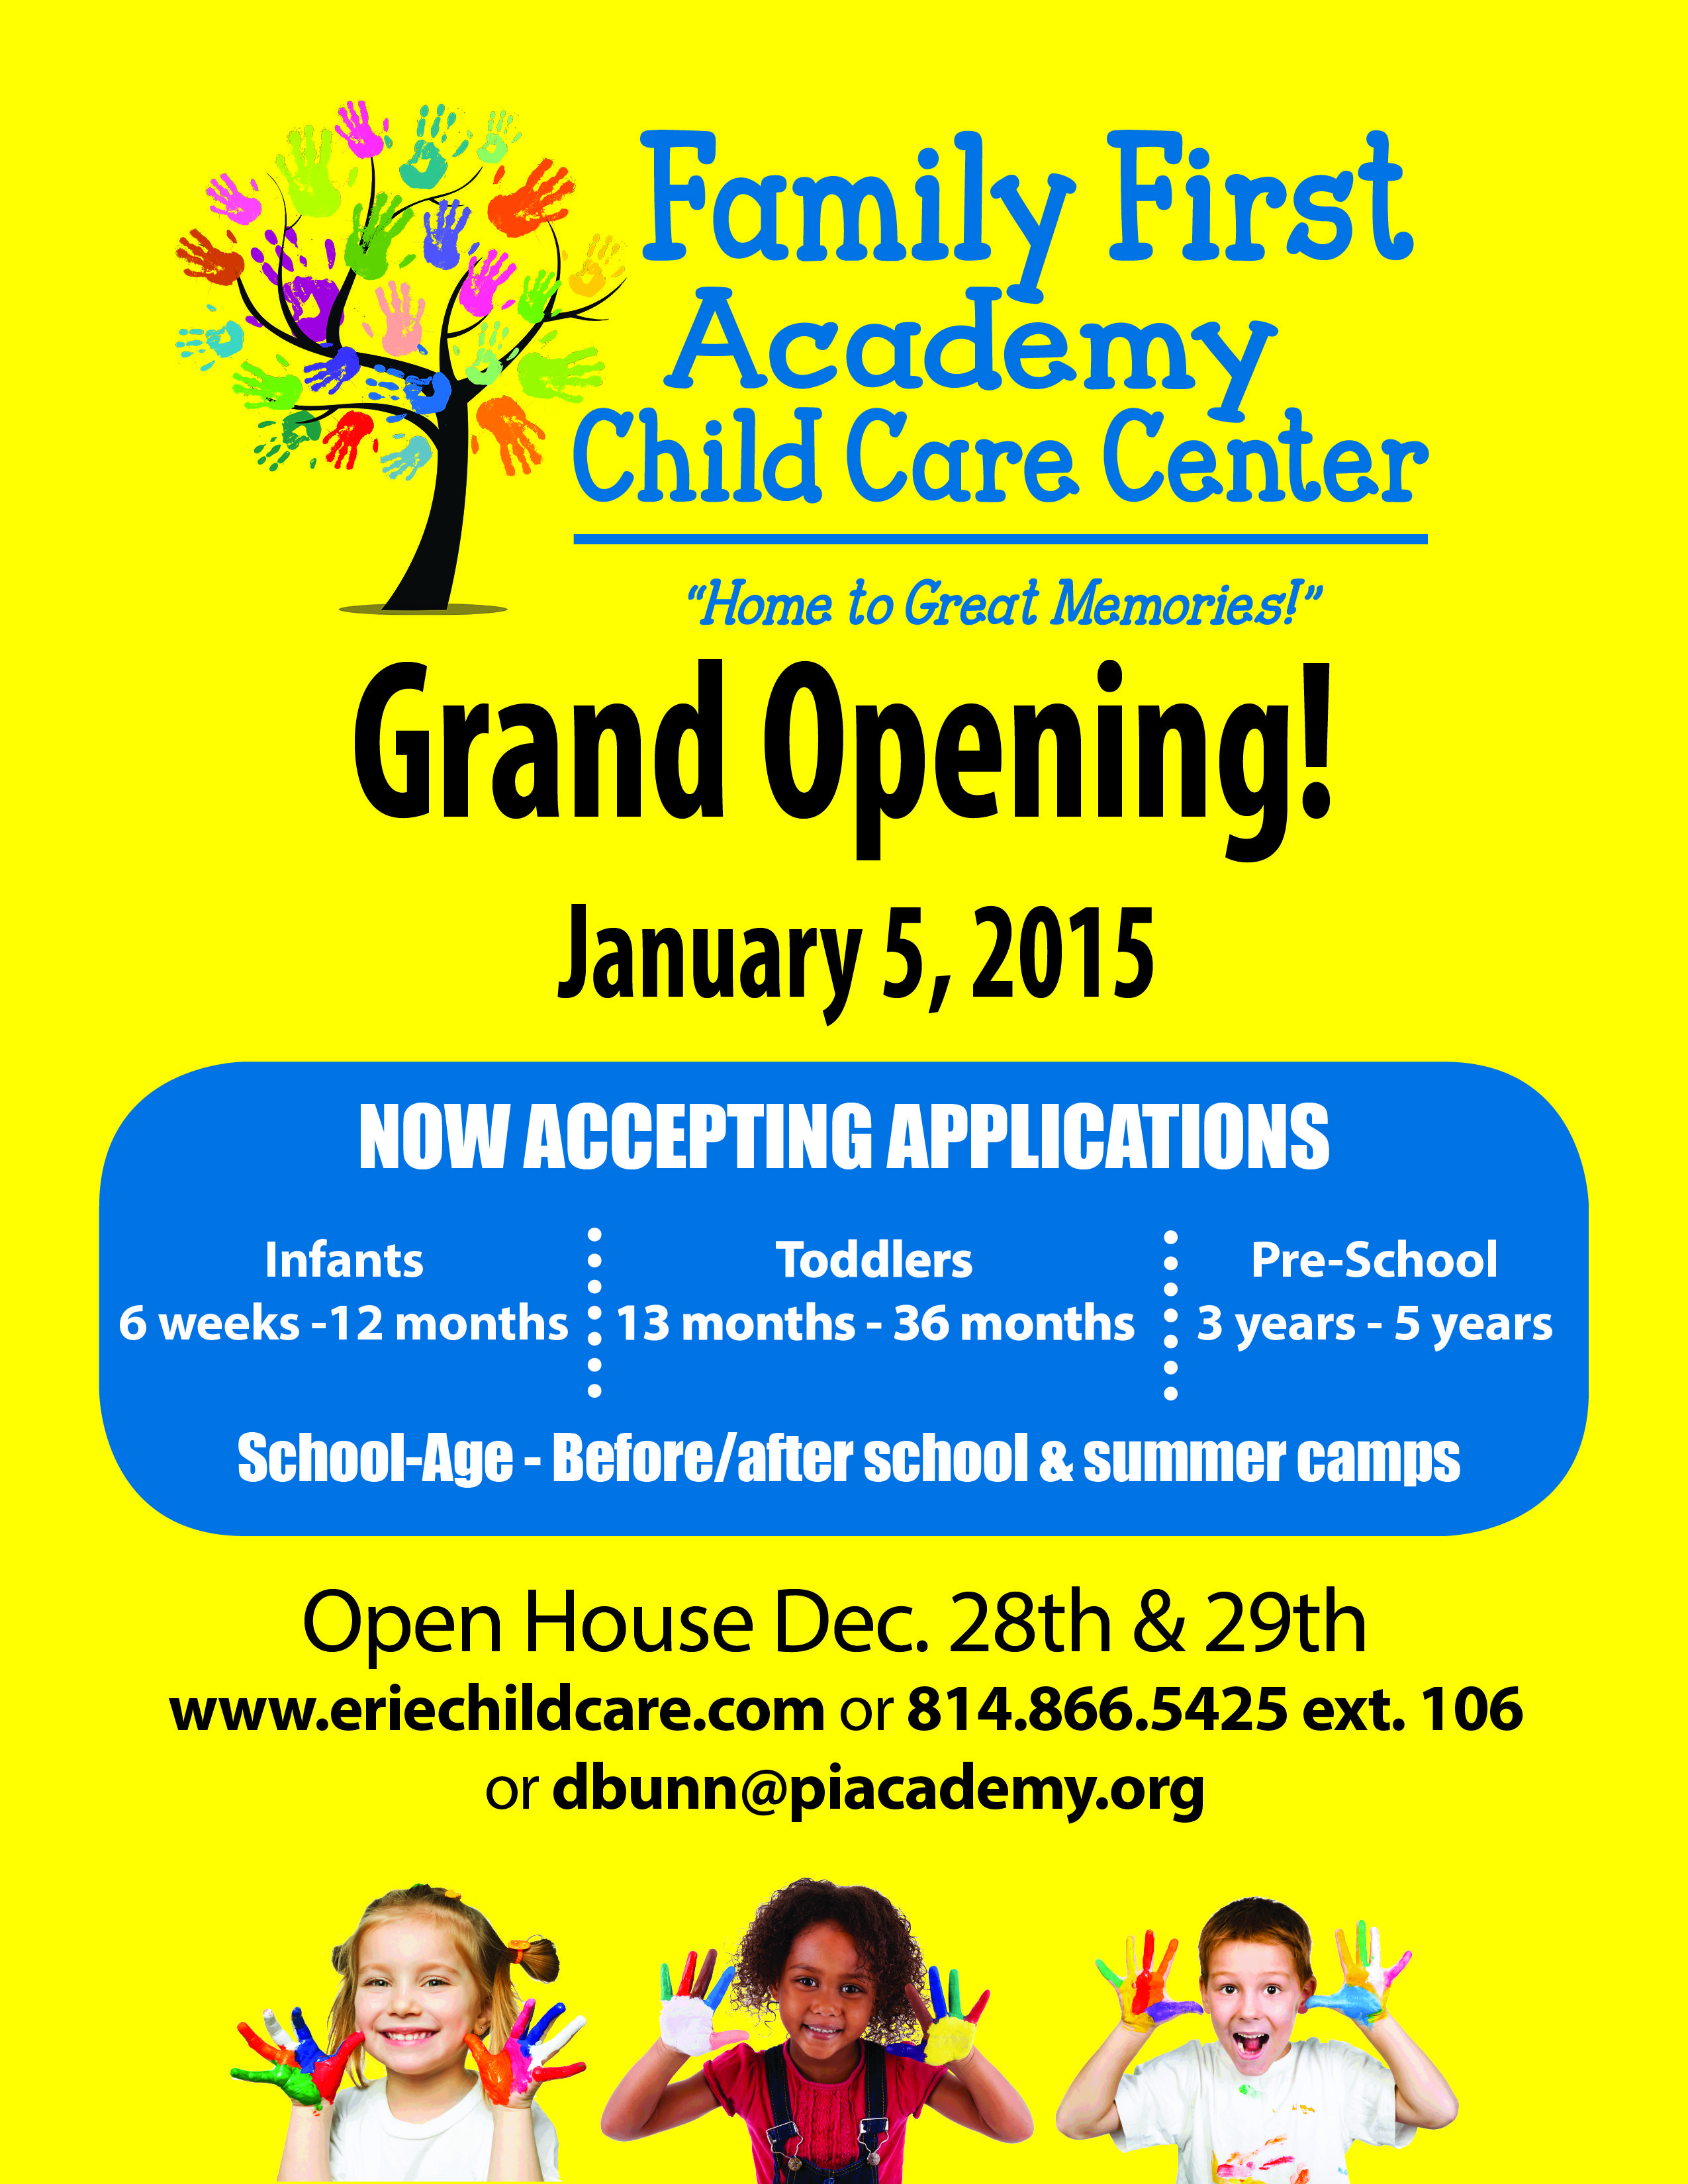 It S Finally Here The Grand Opening Of Family First Academy Child Care Is January 5th Be Sure To Come I Train Activities Family First Education And Training